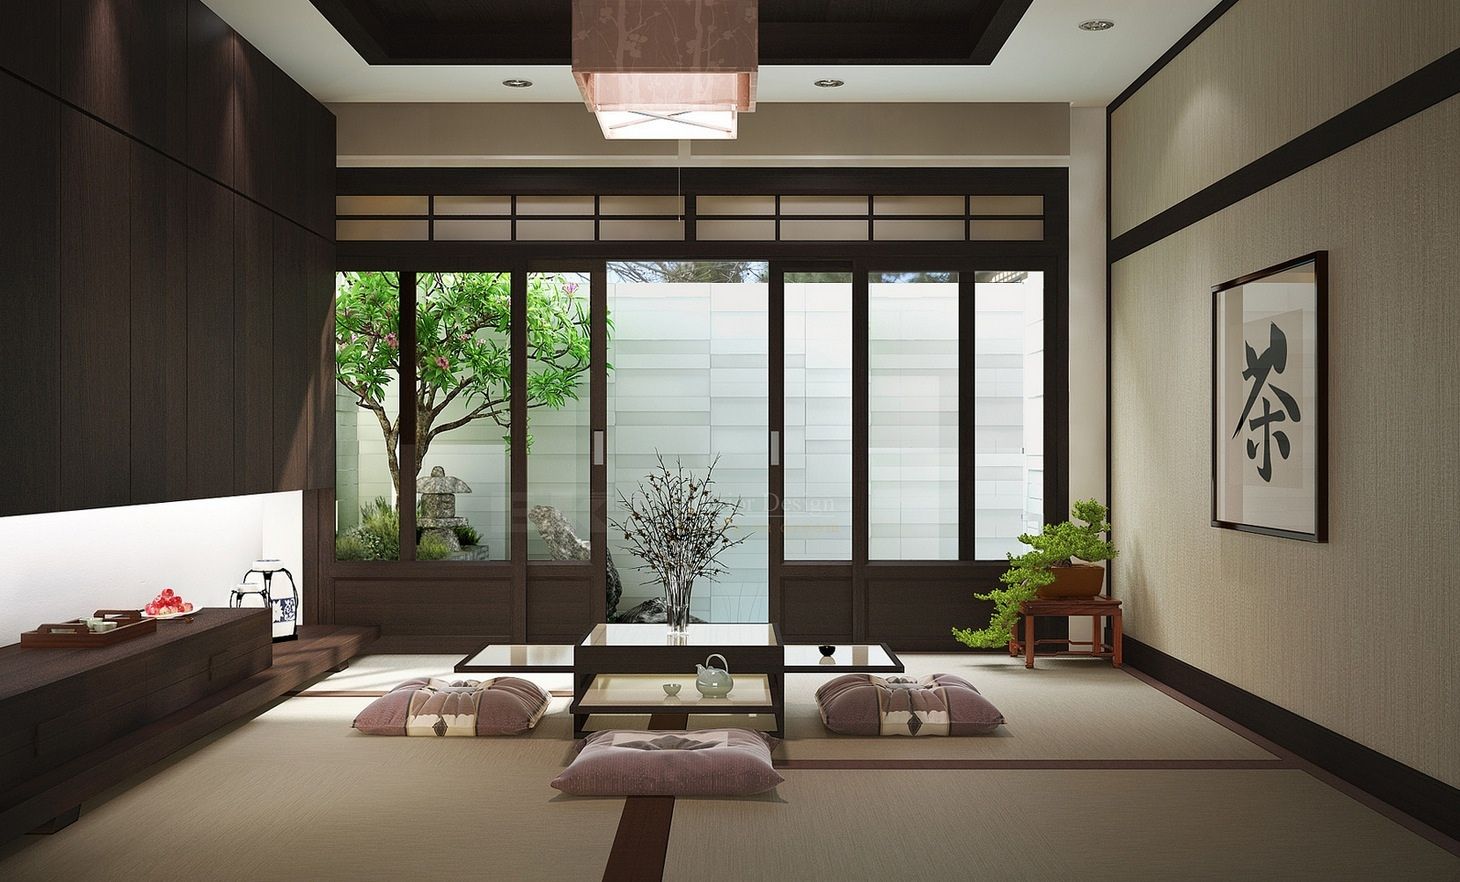 Zen Inspired Interior Design on zen home design, zen room design, zen wall design, house to home interiors designs, house design inside and outside, house built inside mountain, modern zen garden design, houzz craftsman home exterior design, bungalow house plans philippines design, zen office design, beach house kitchen design, buddhist home design, japanese kitchen design,